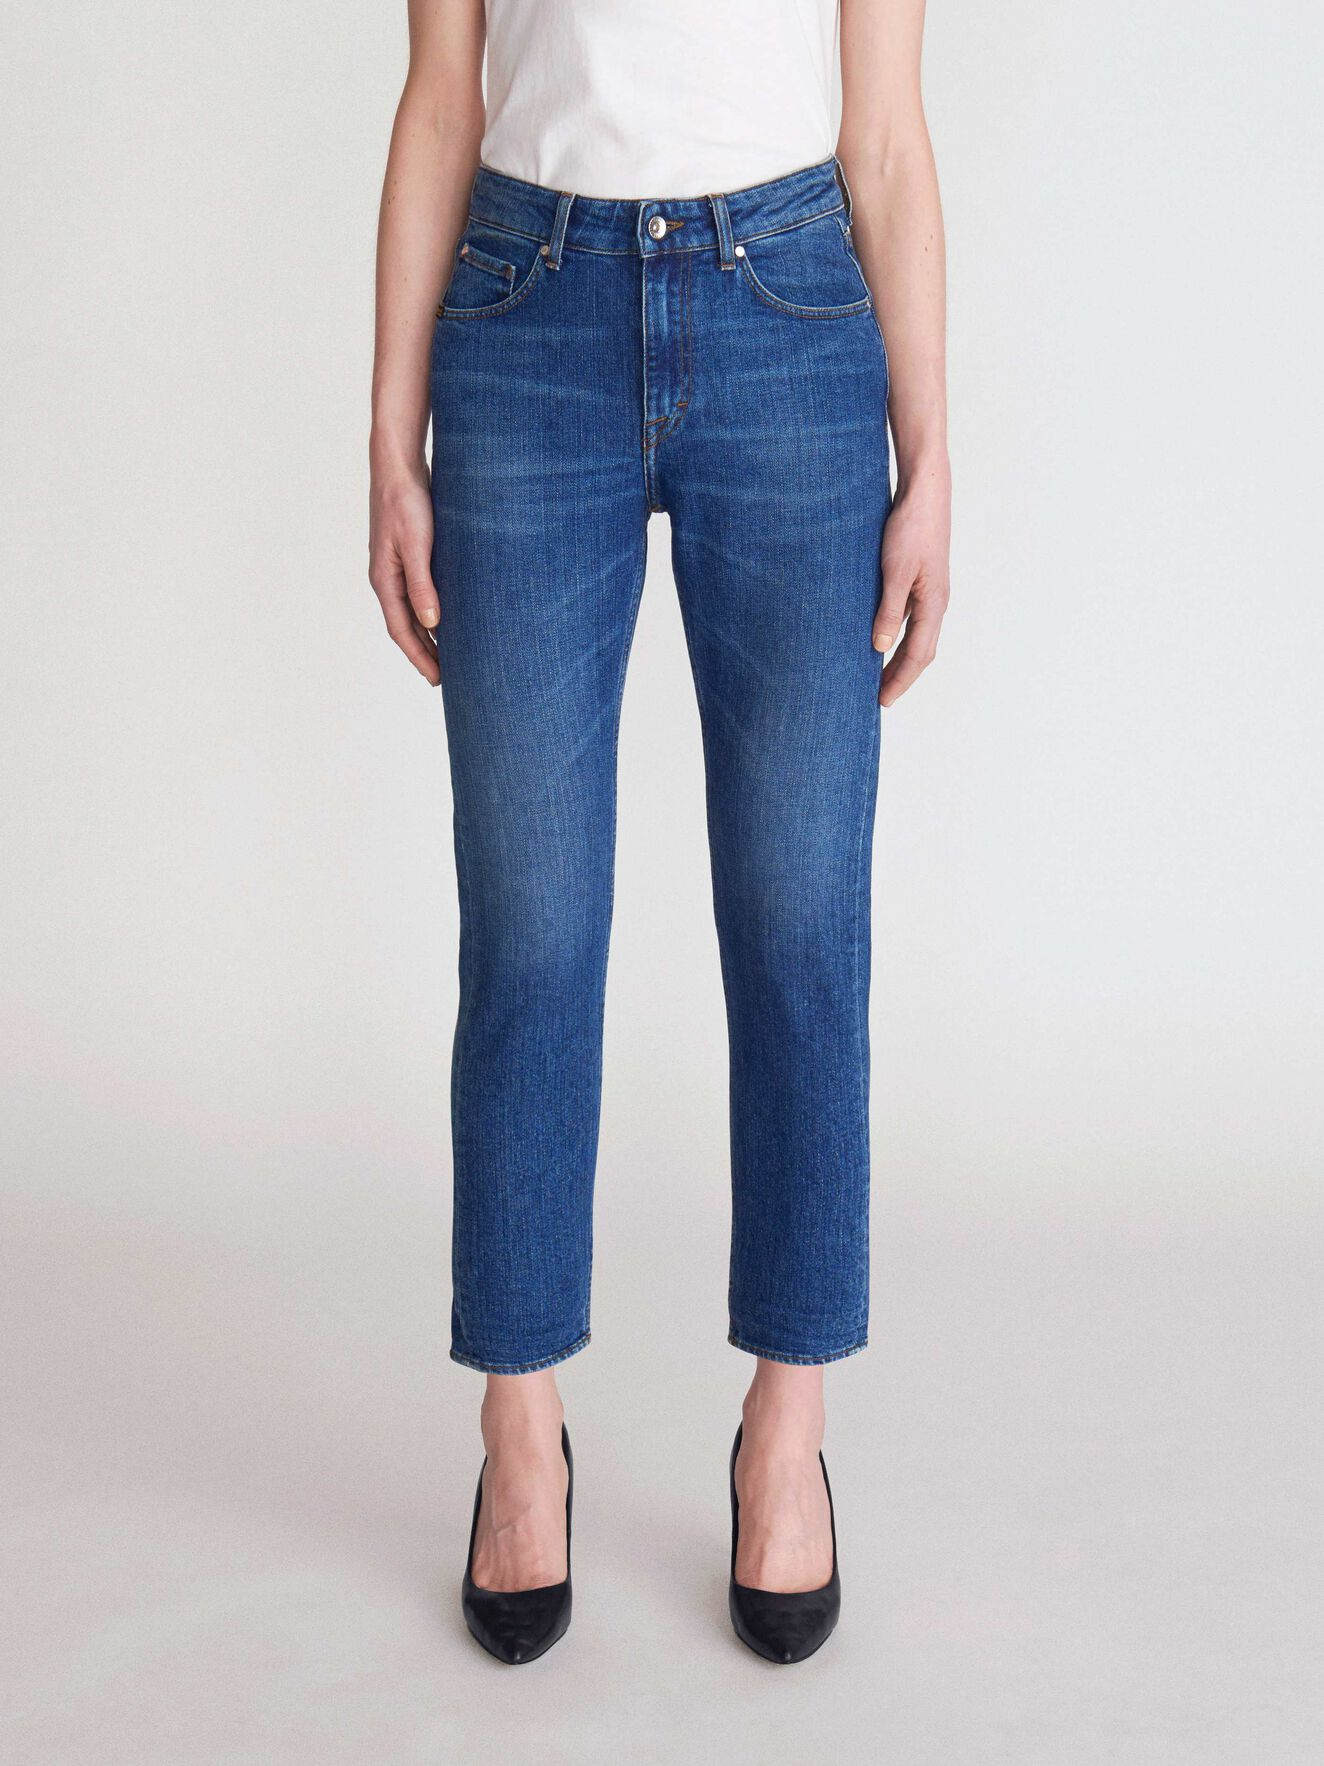 Lea Jeans in Medium Blue from Tiger of Sweden